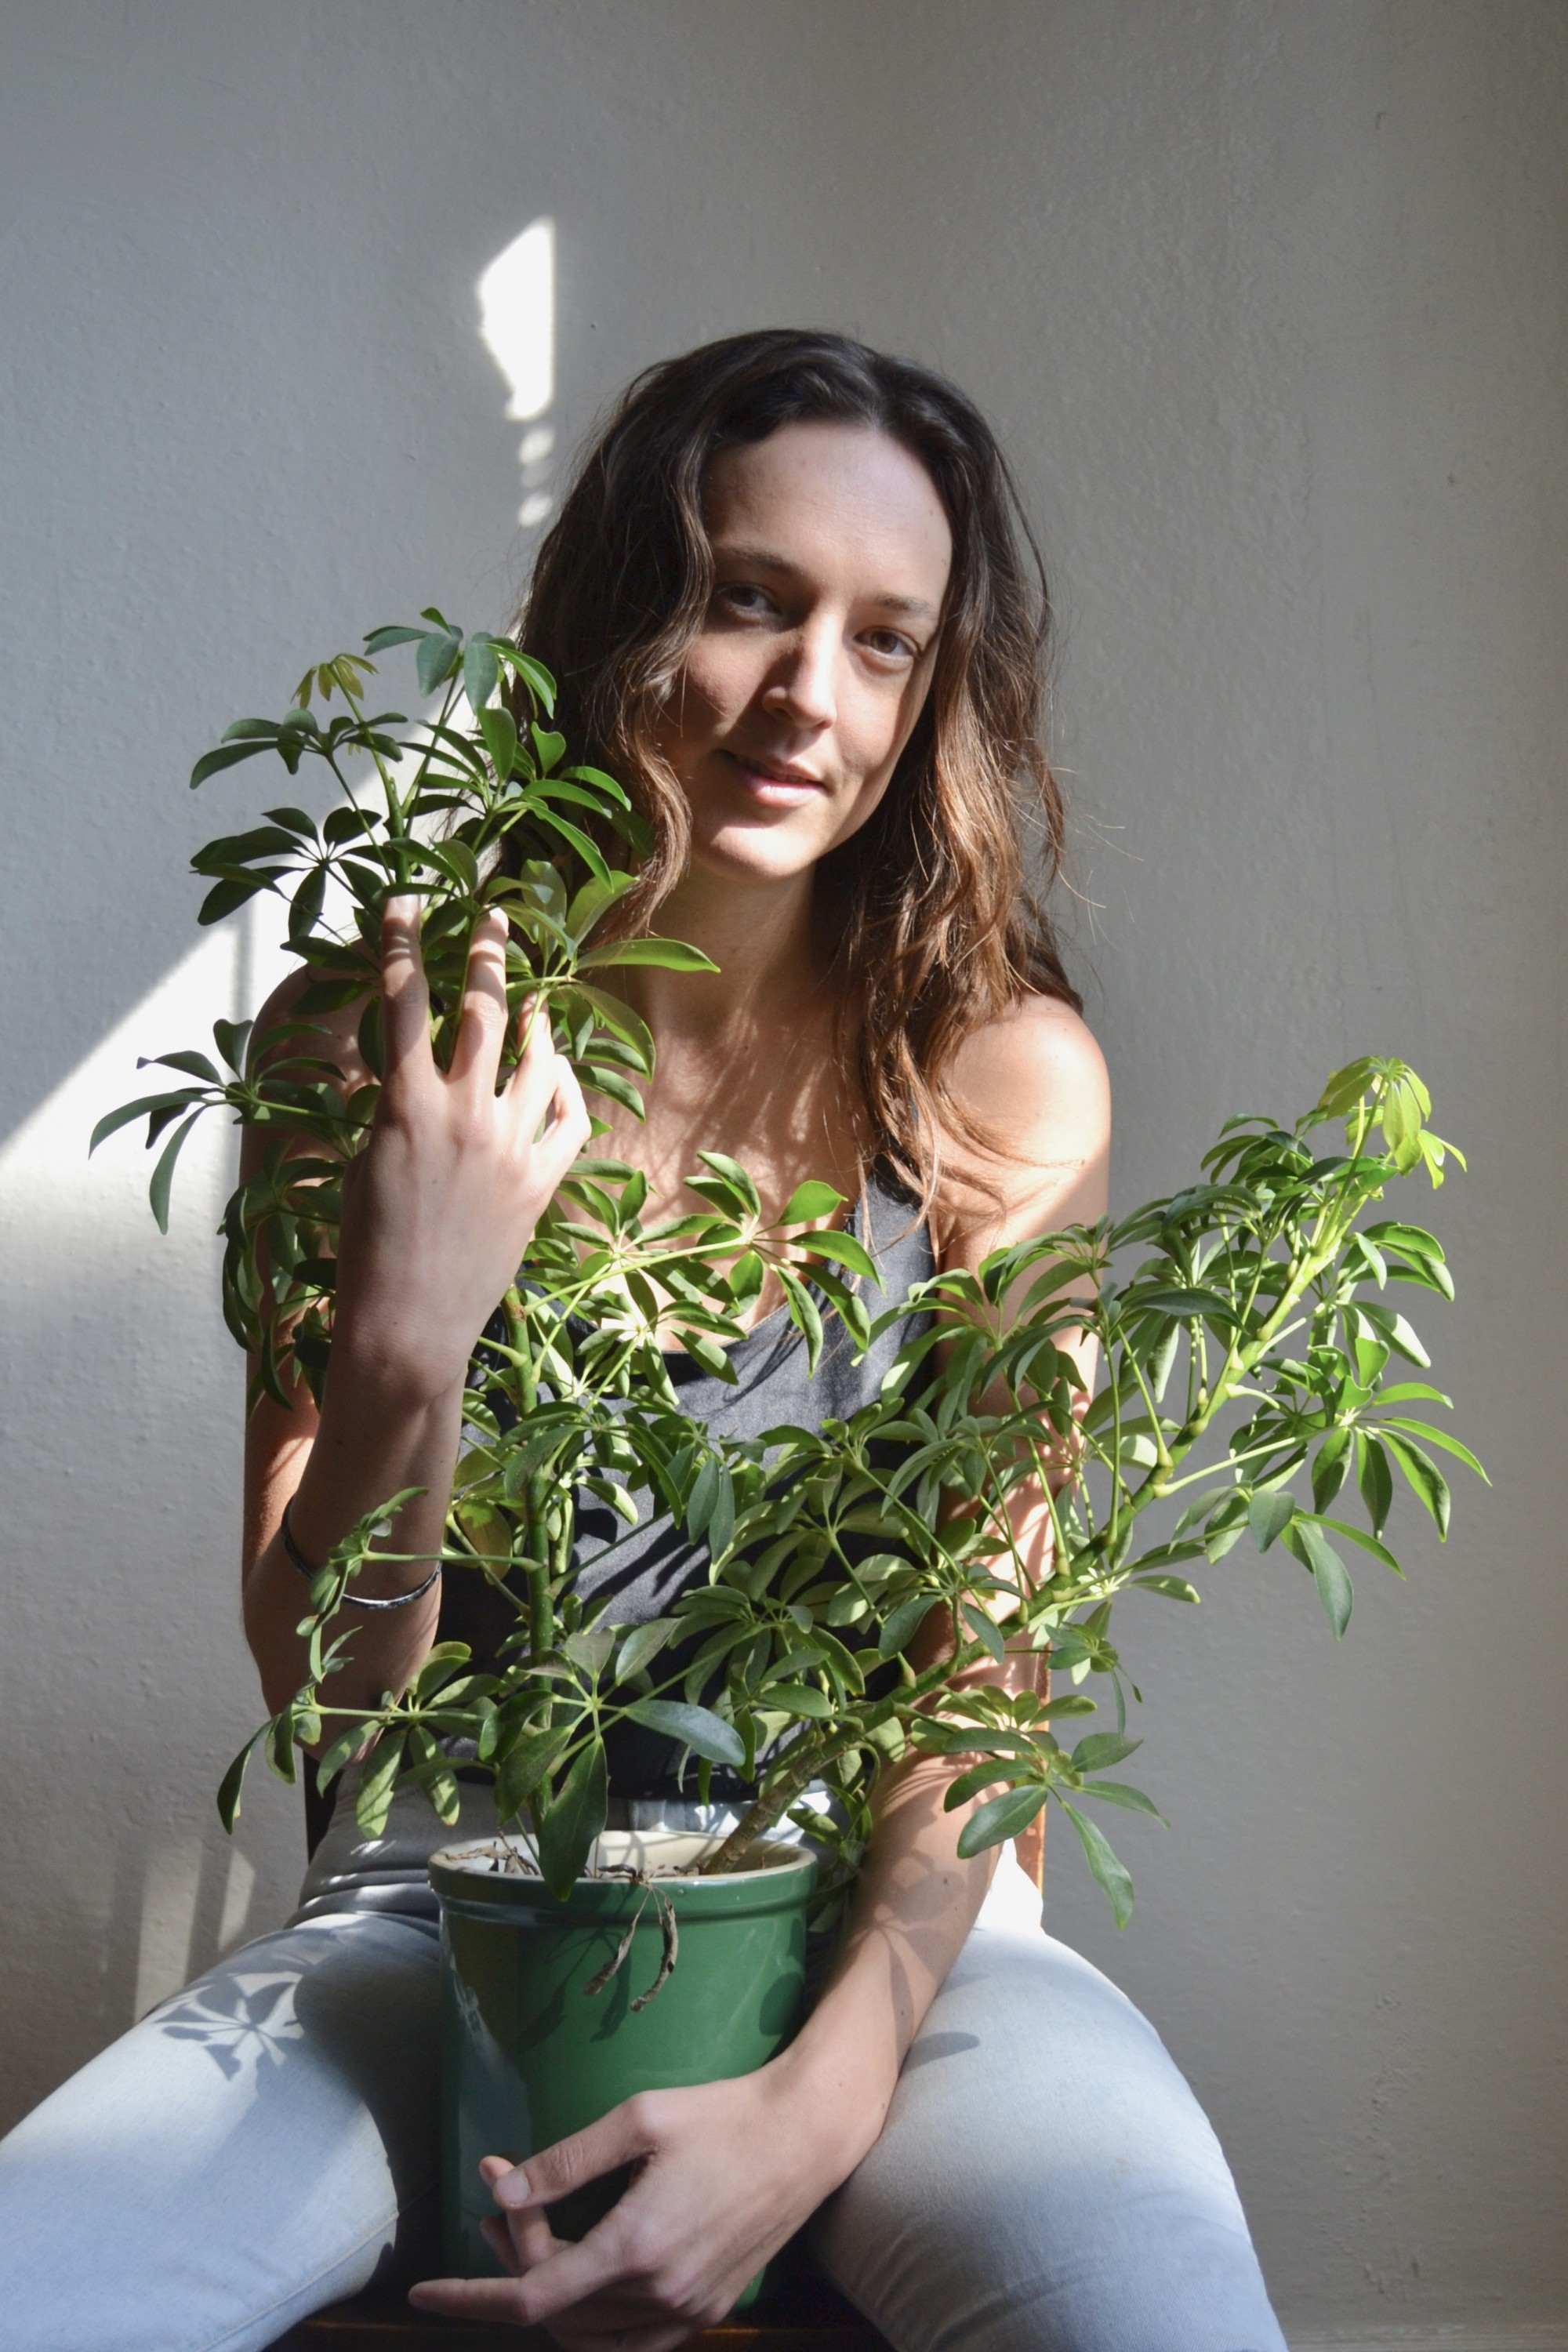 Sophia Dahlin sits in front of a white wall in a spot of light, holding a houseplant in her lap